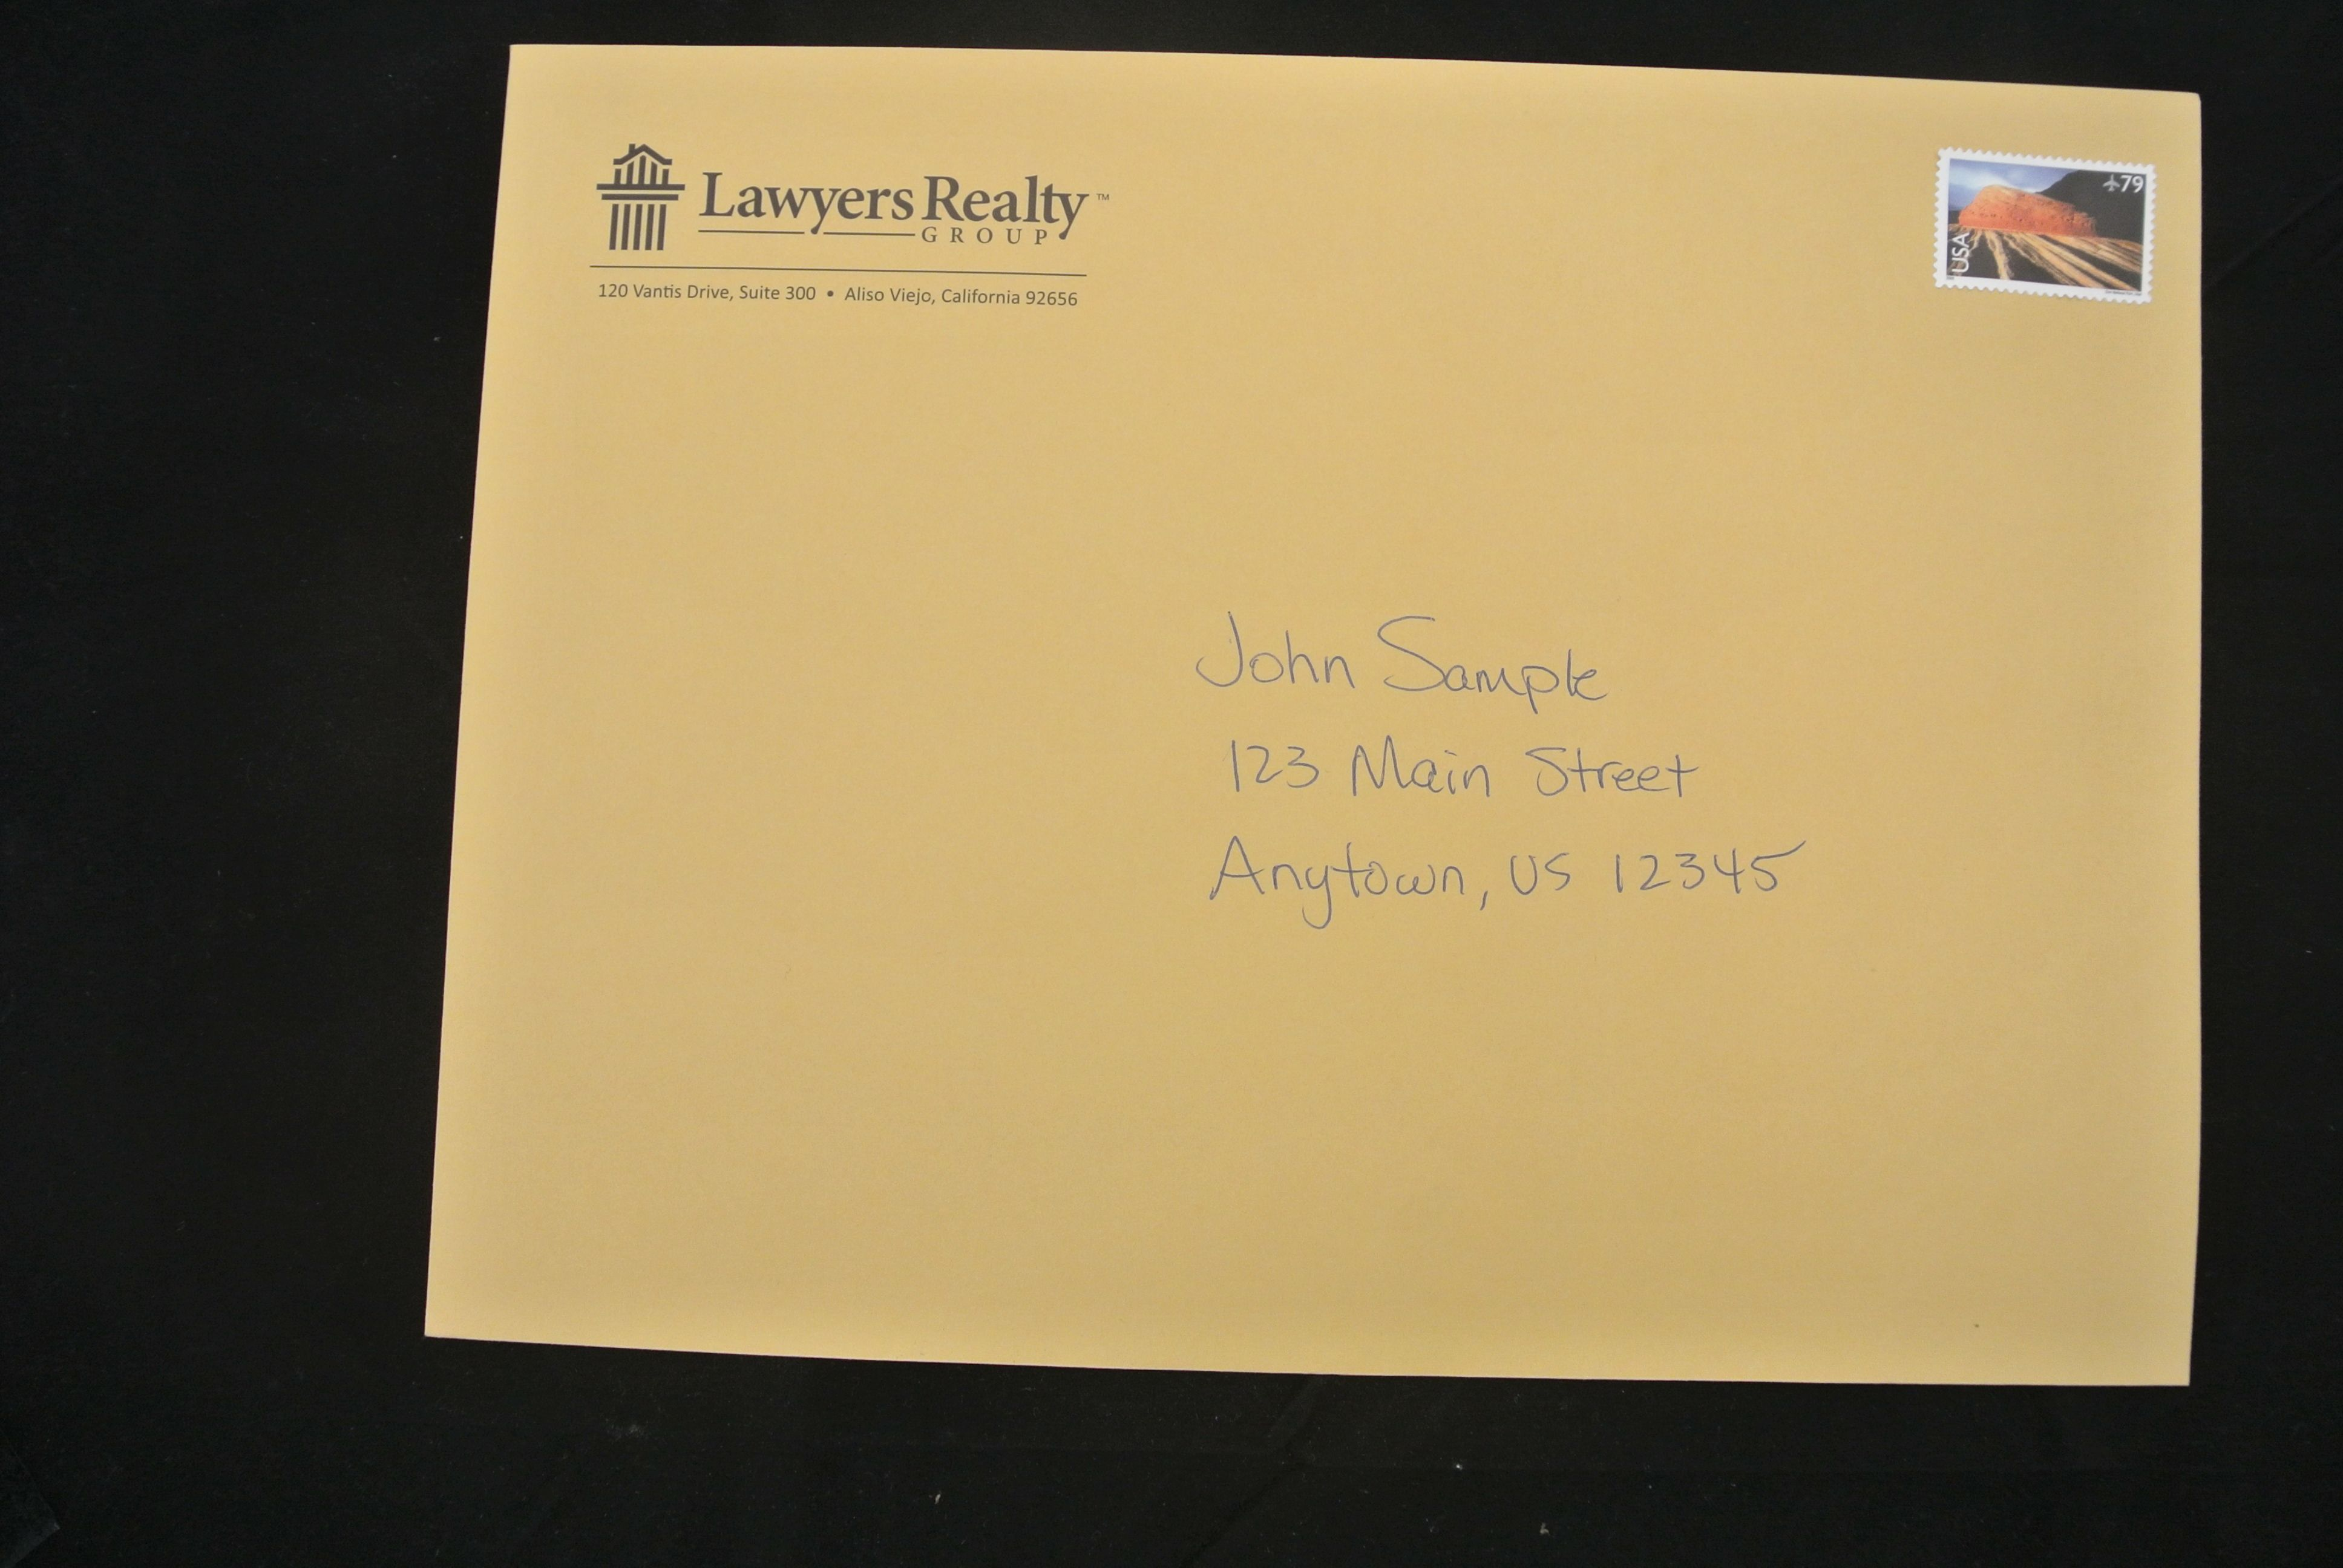 law firm offers valuable information to distressed home owners using a real hand addressed 9x12 envelope